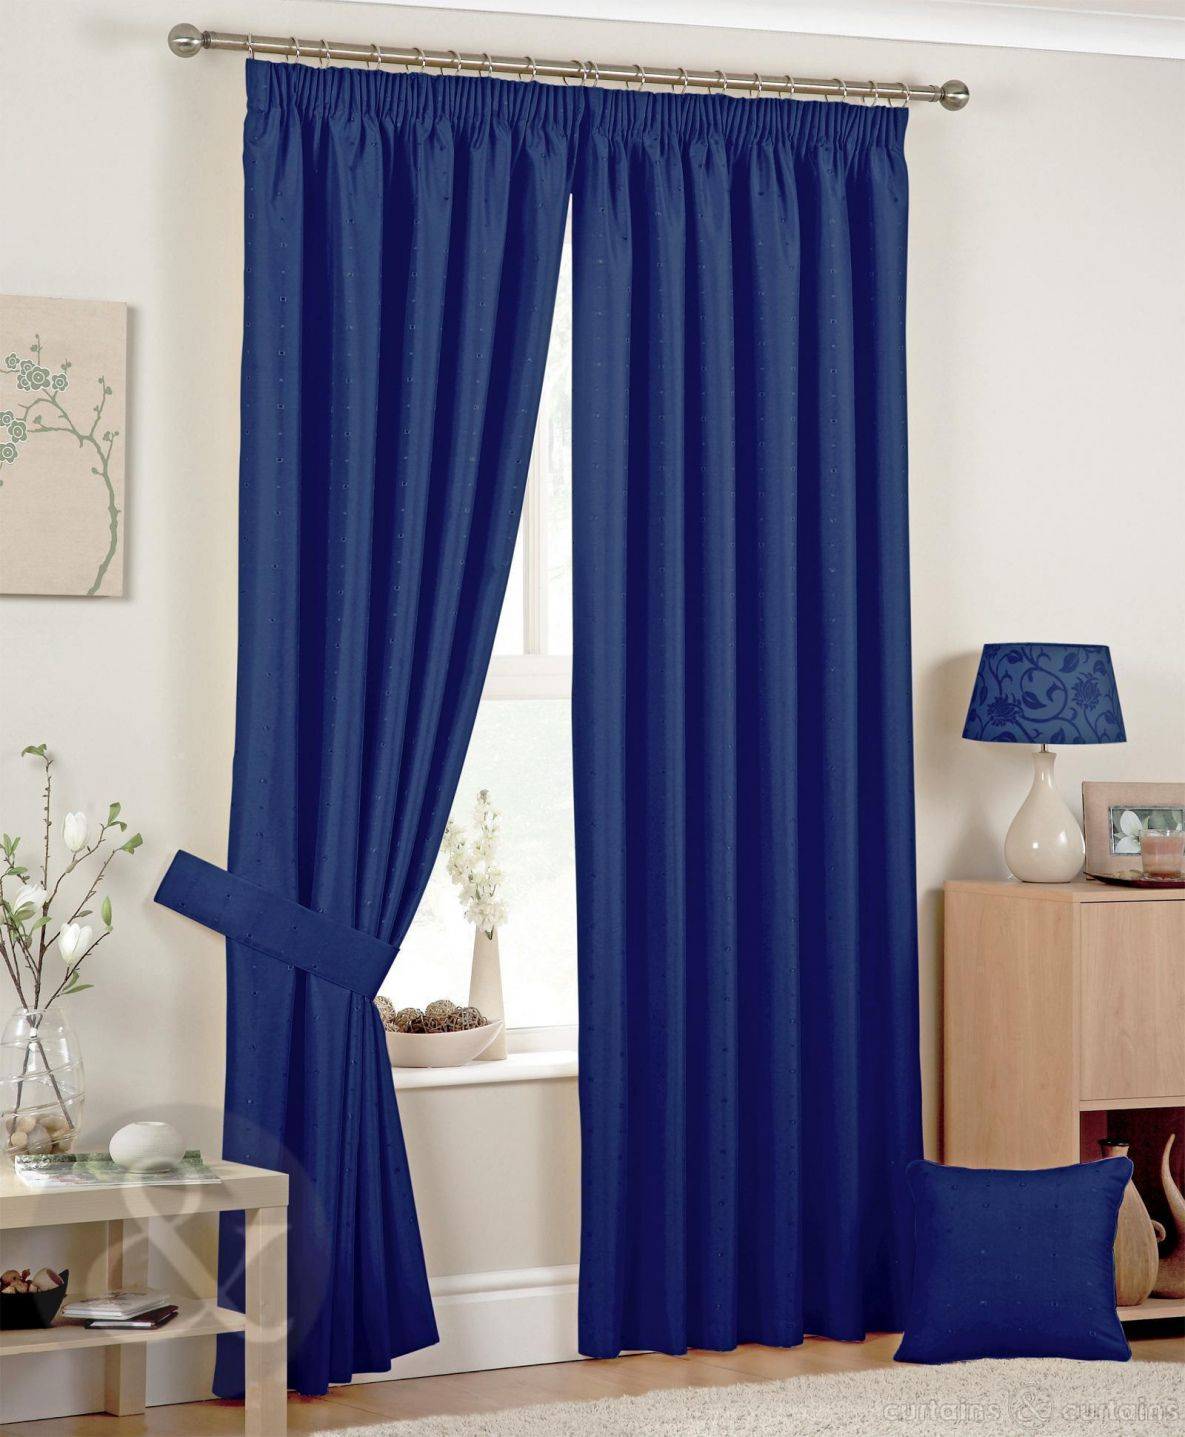 Pin By Ma Maison Greece On Curtains For Living Room Ideas Blue Curtains Bedroom Blue Curtains For Bedroom Curtains Living Room